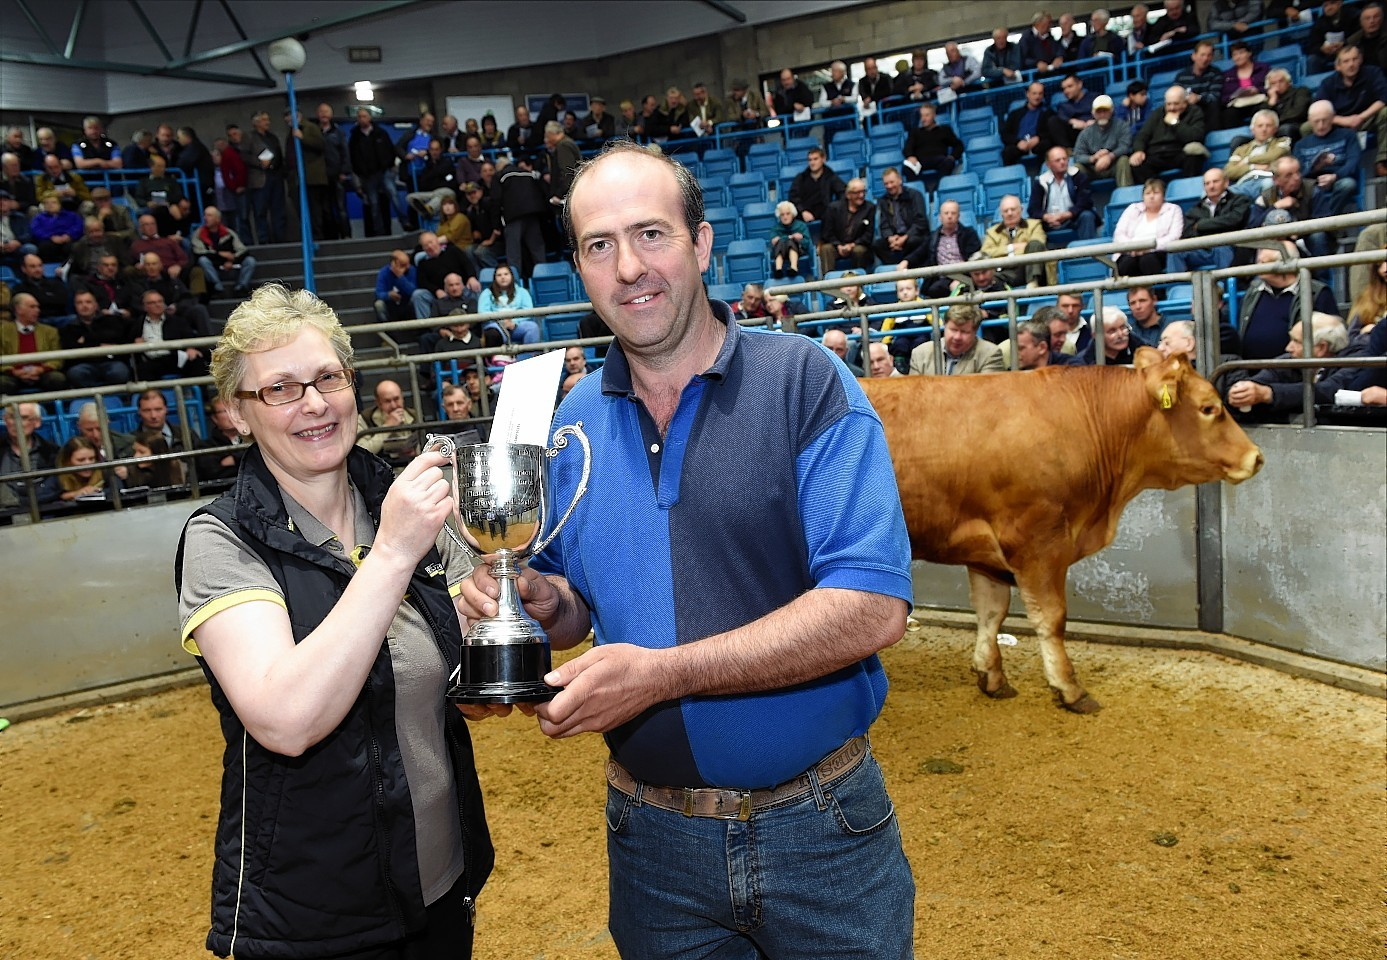 Gavin Greenlaw was presented with his trophy by Eileen Brown from show sponsor Turriff Agri Parts